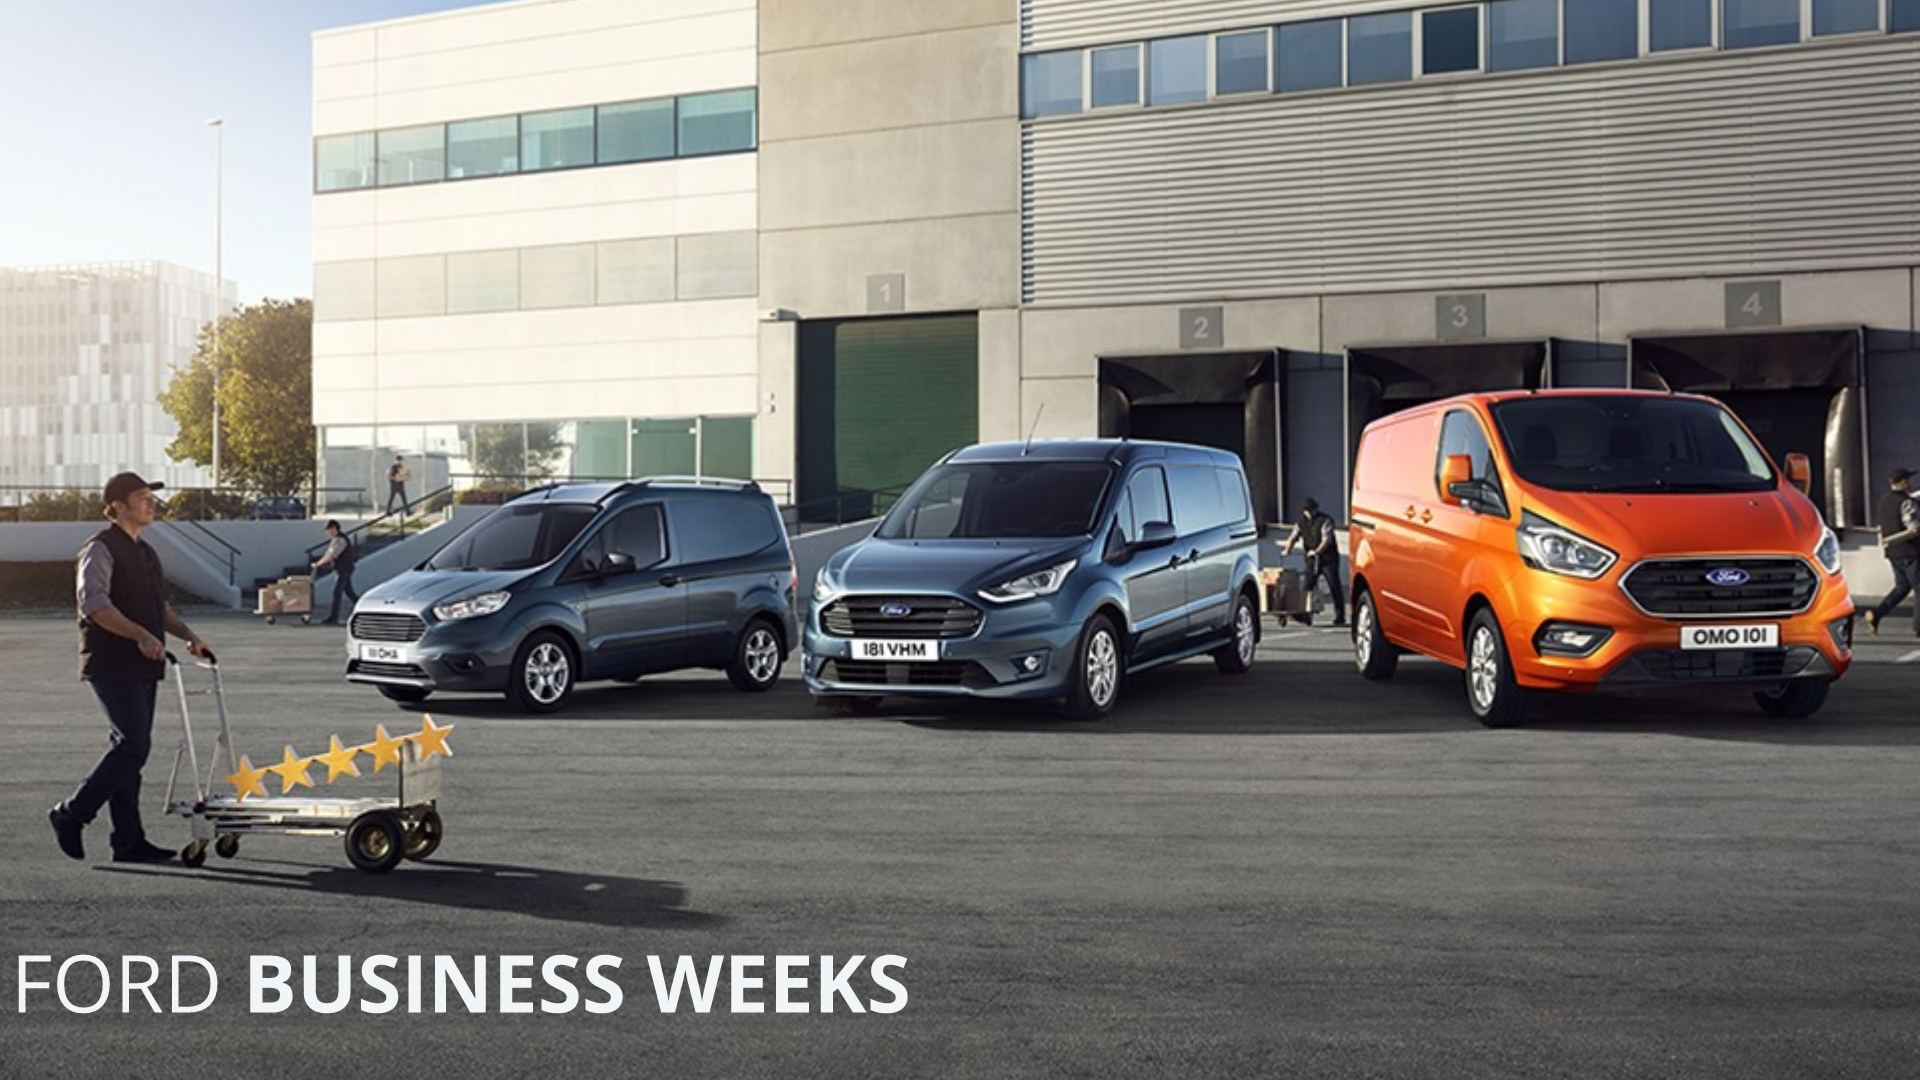 FORD BUSINESS WEEKS - Alege vehiculul comercial potrivit afacerii tale